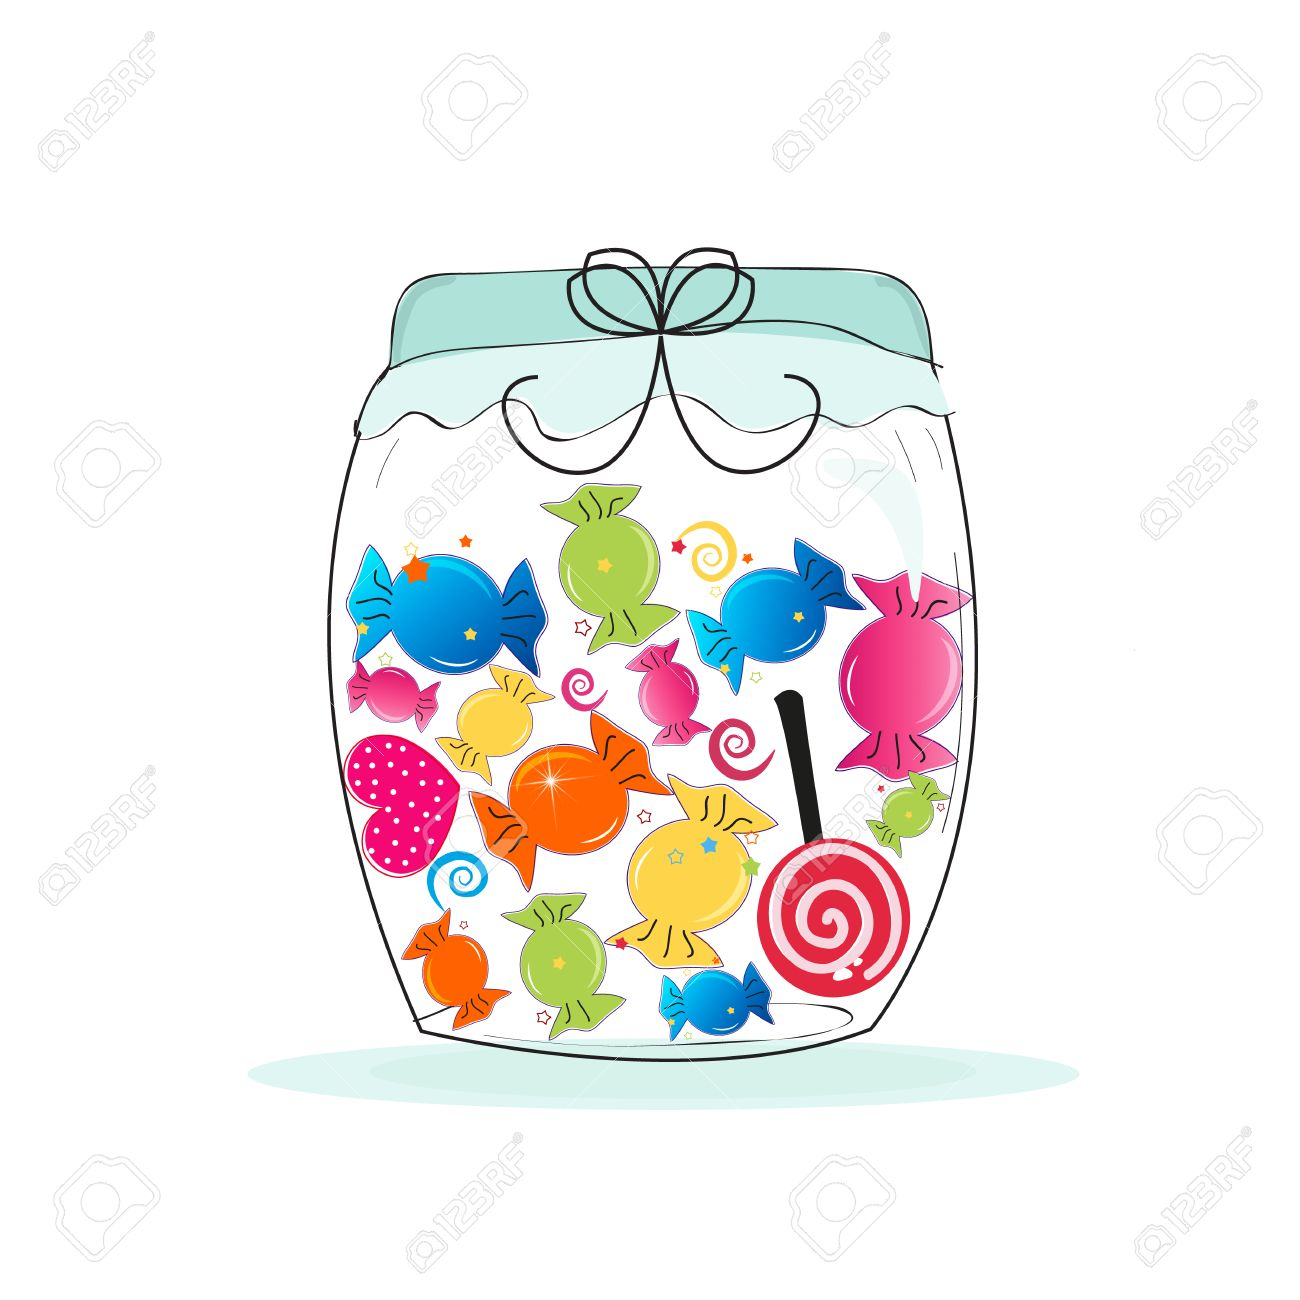 Candy jar clipart 7 » Clipart Station.